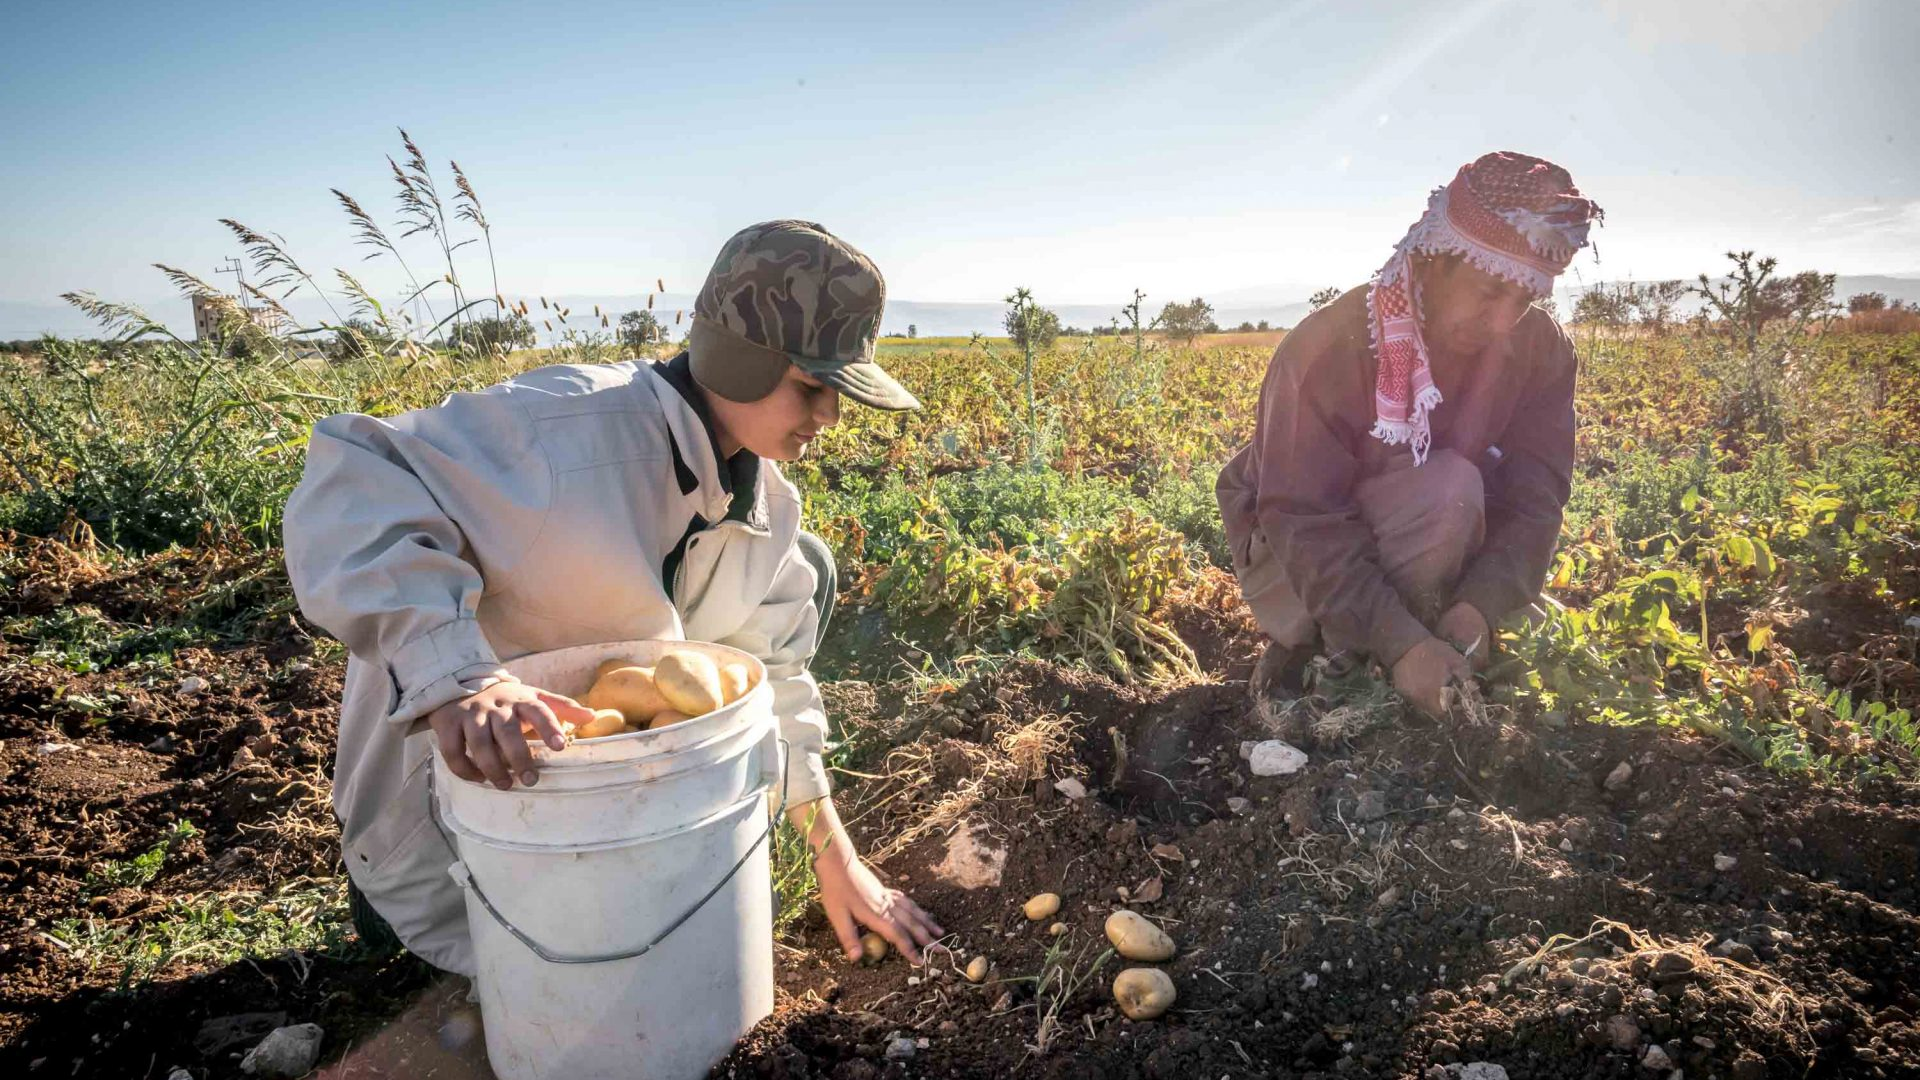 Local farmers harvest potatoes from the fertile soil around Umm Qais.